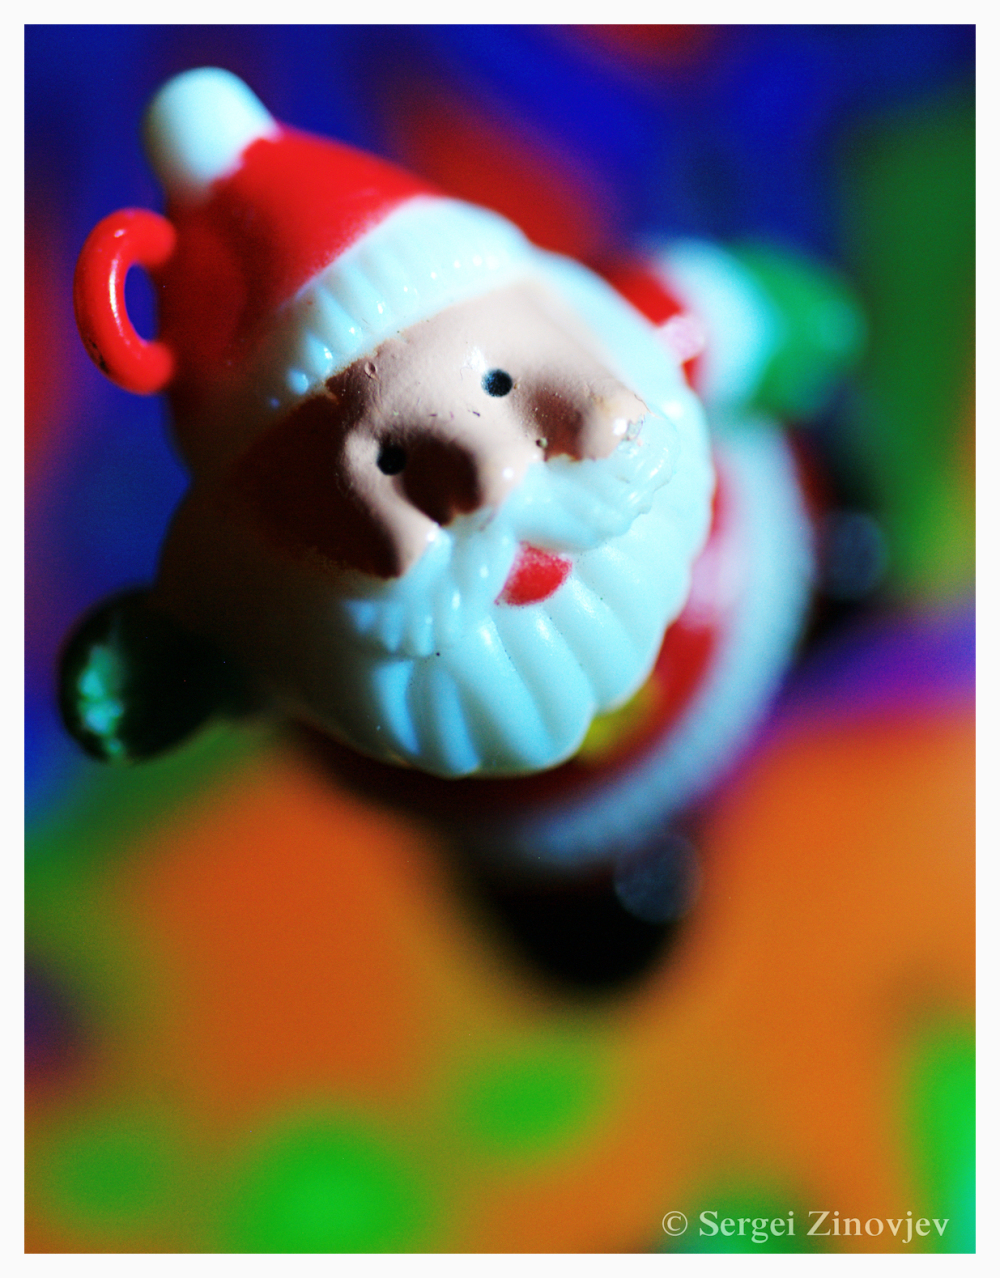 Santa Claus toy on colorful background